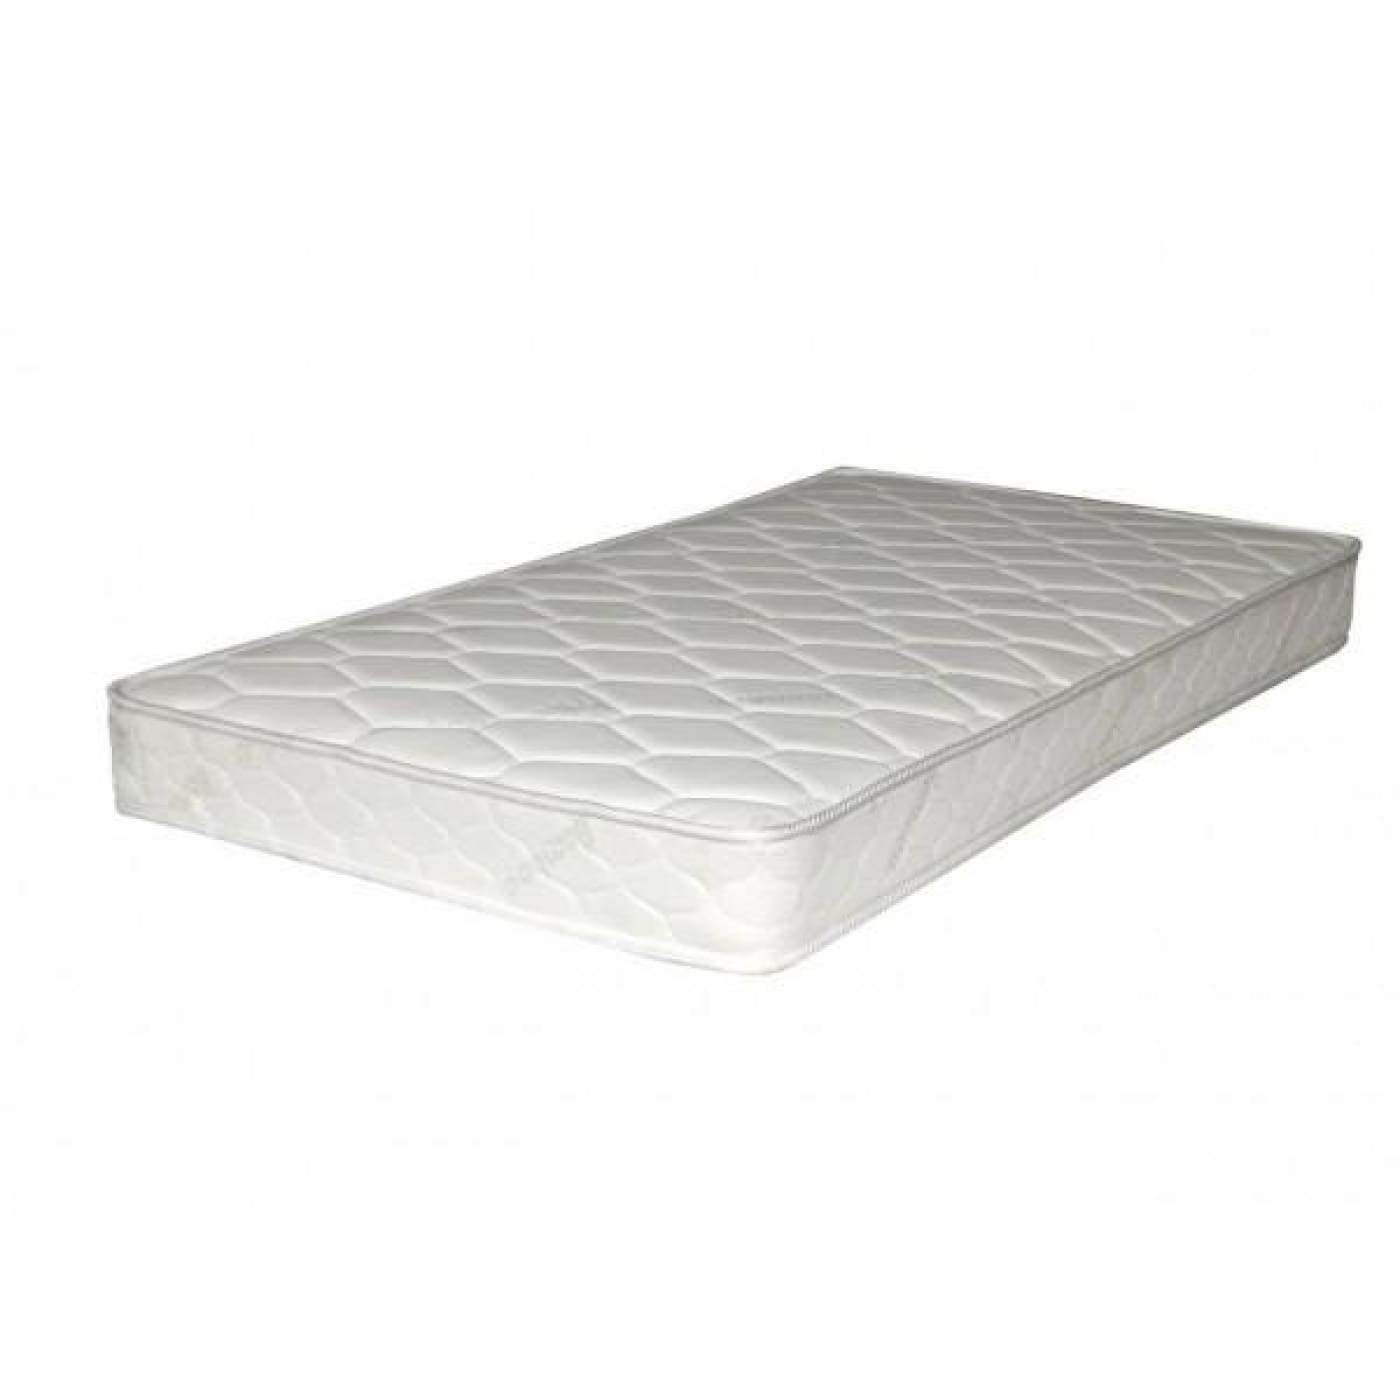 Love N Care Bamboo Organic Cot Mattress 130X69CM - NURSERY & BEDTIME - COT MATTRESSES